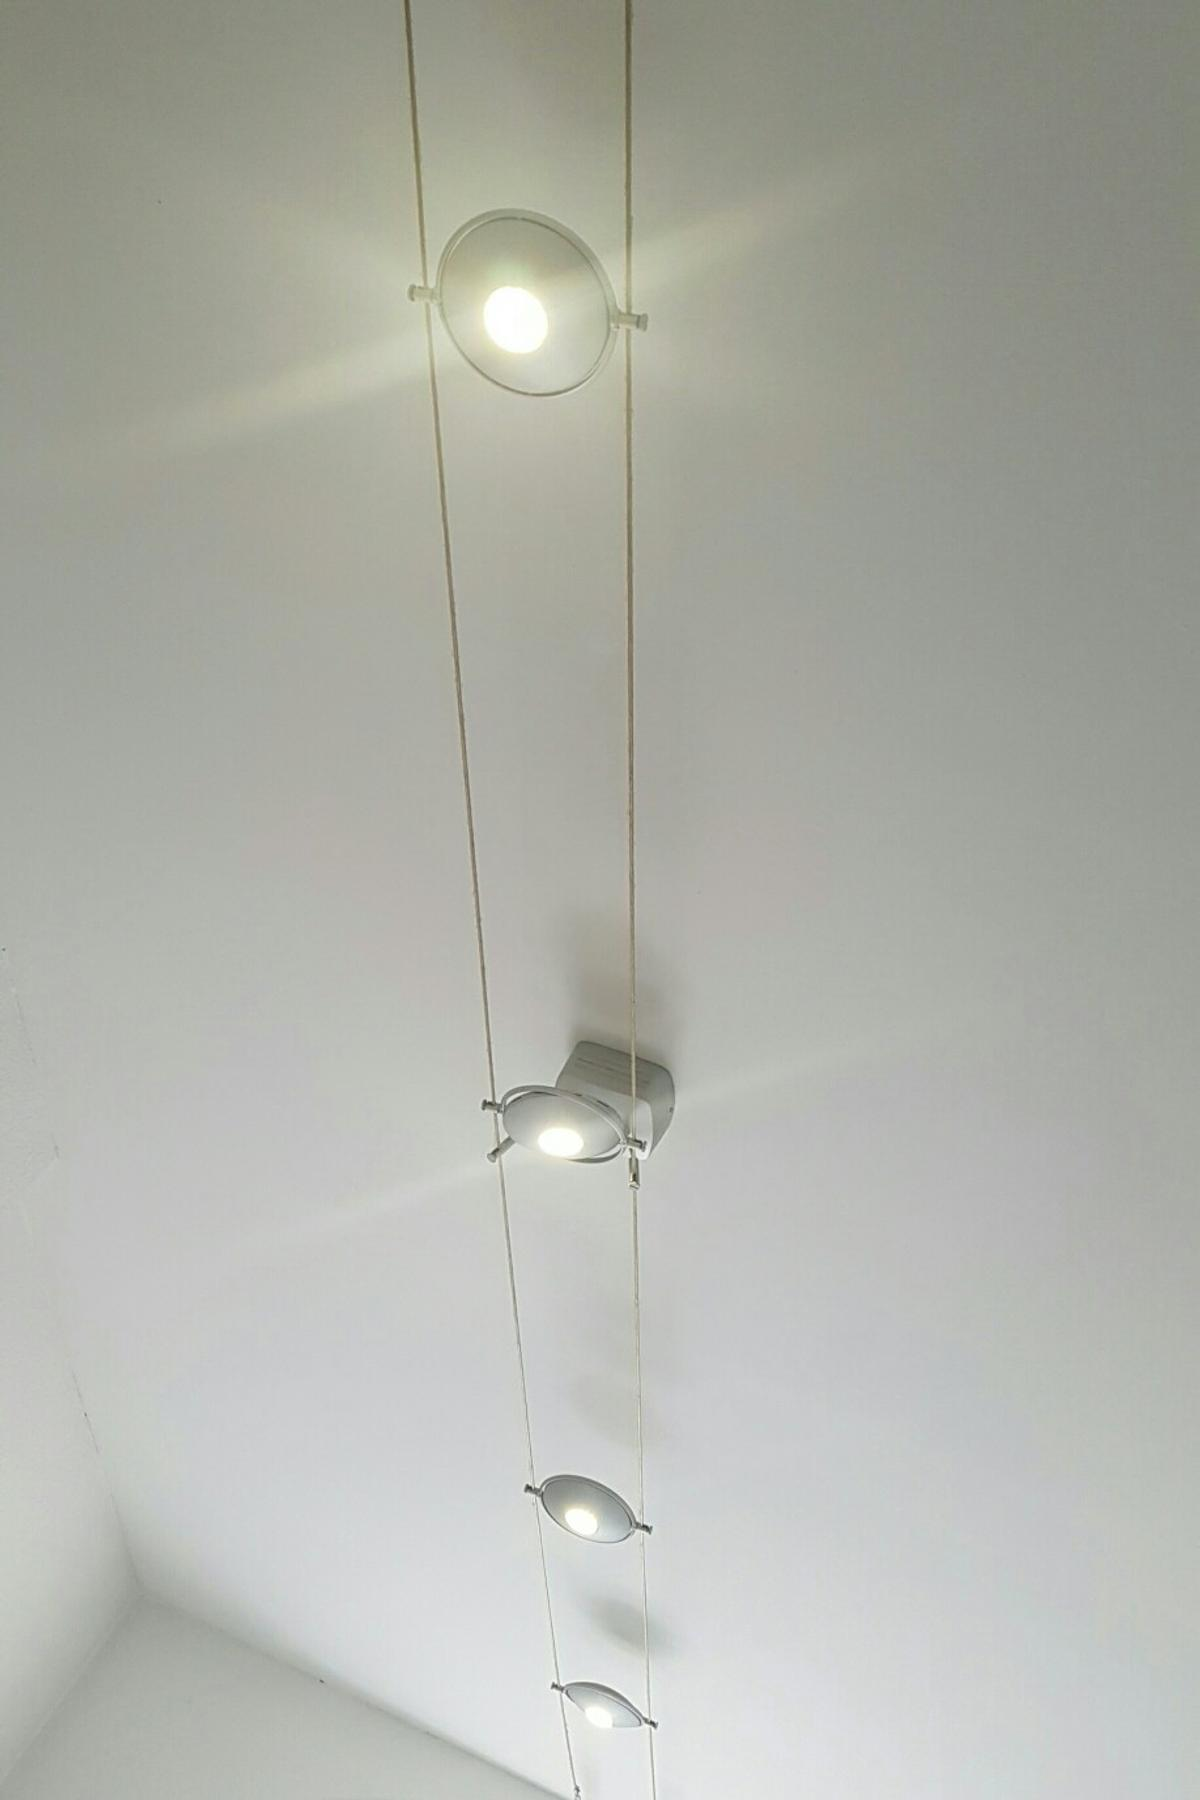 Led Lampe Seilsystem Ikea Ufo In 12051 Neukolln For 30 00 For Sale Shpock